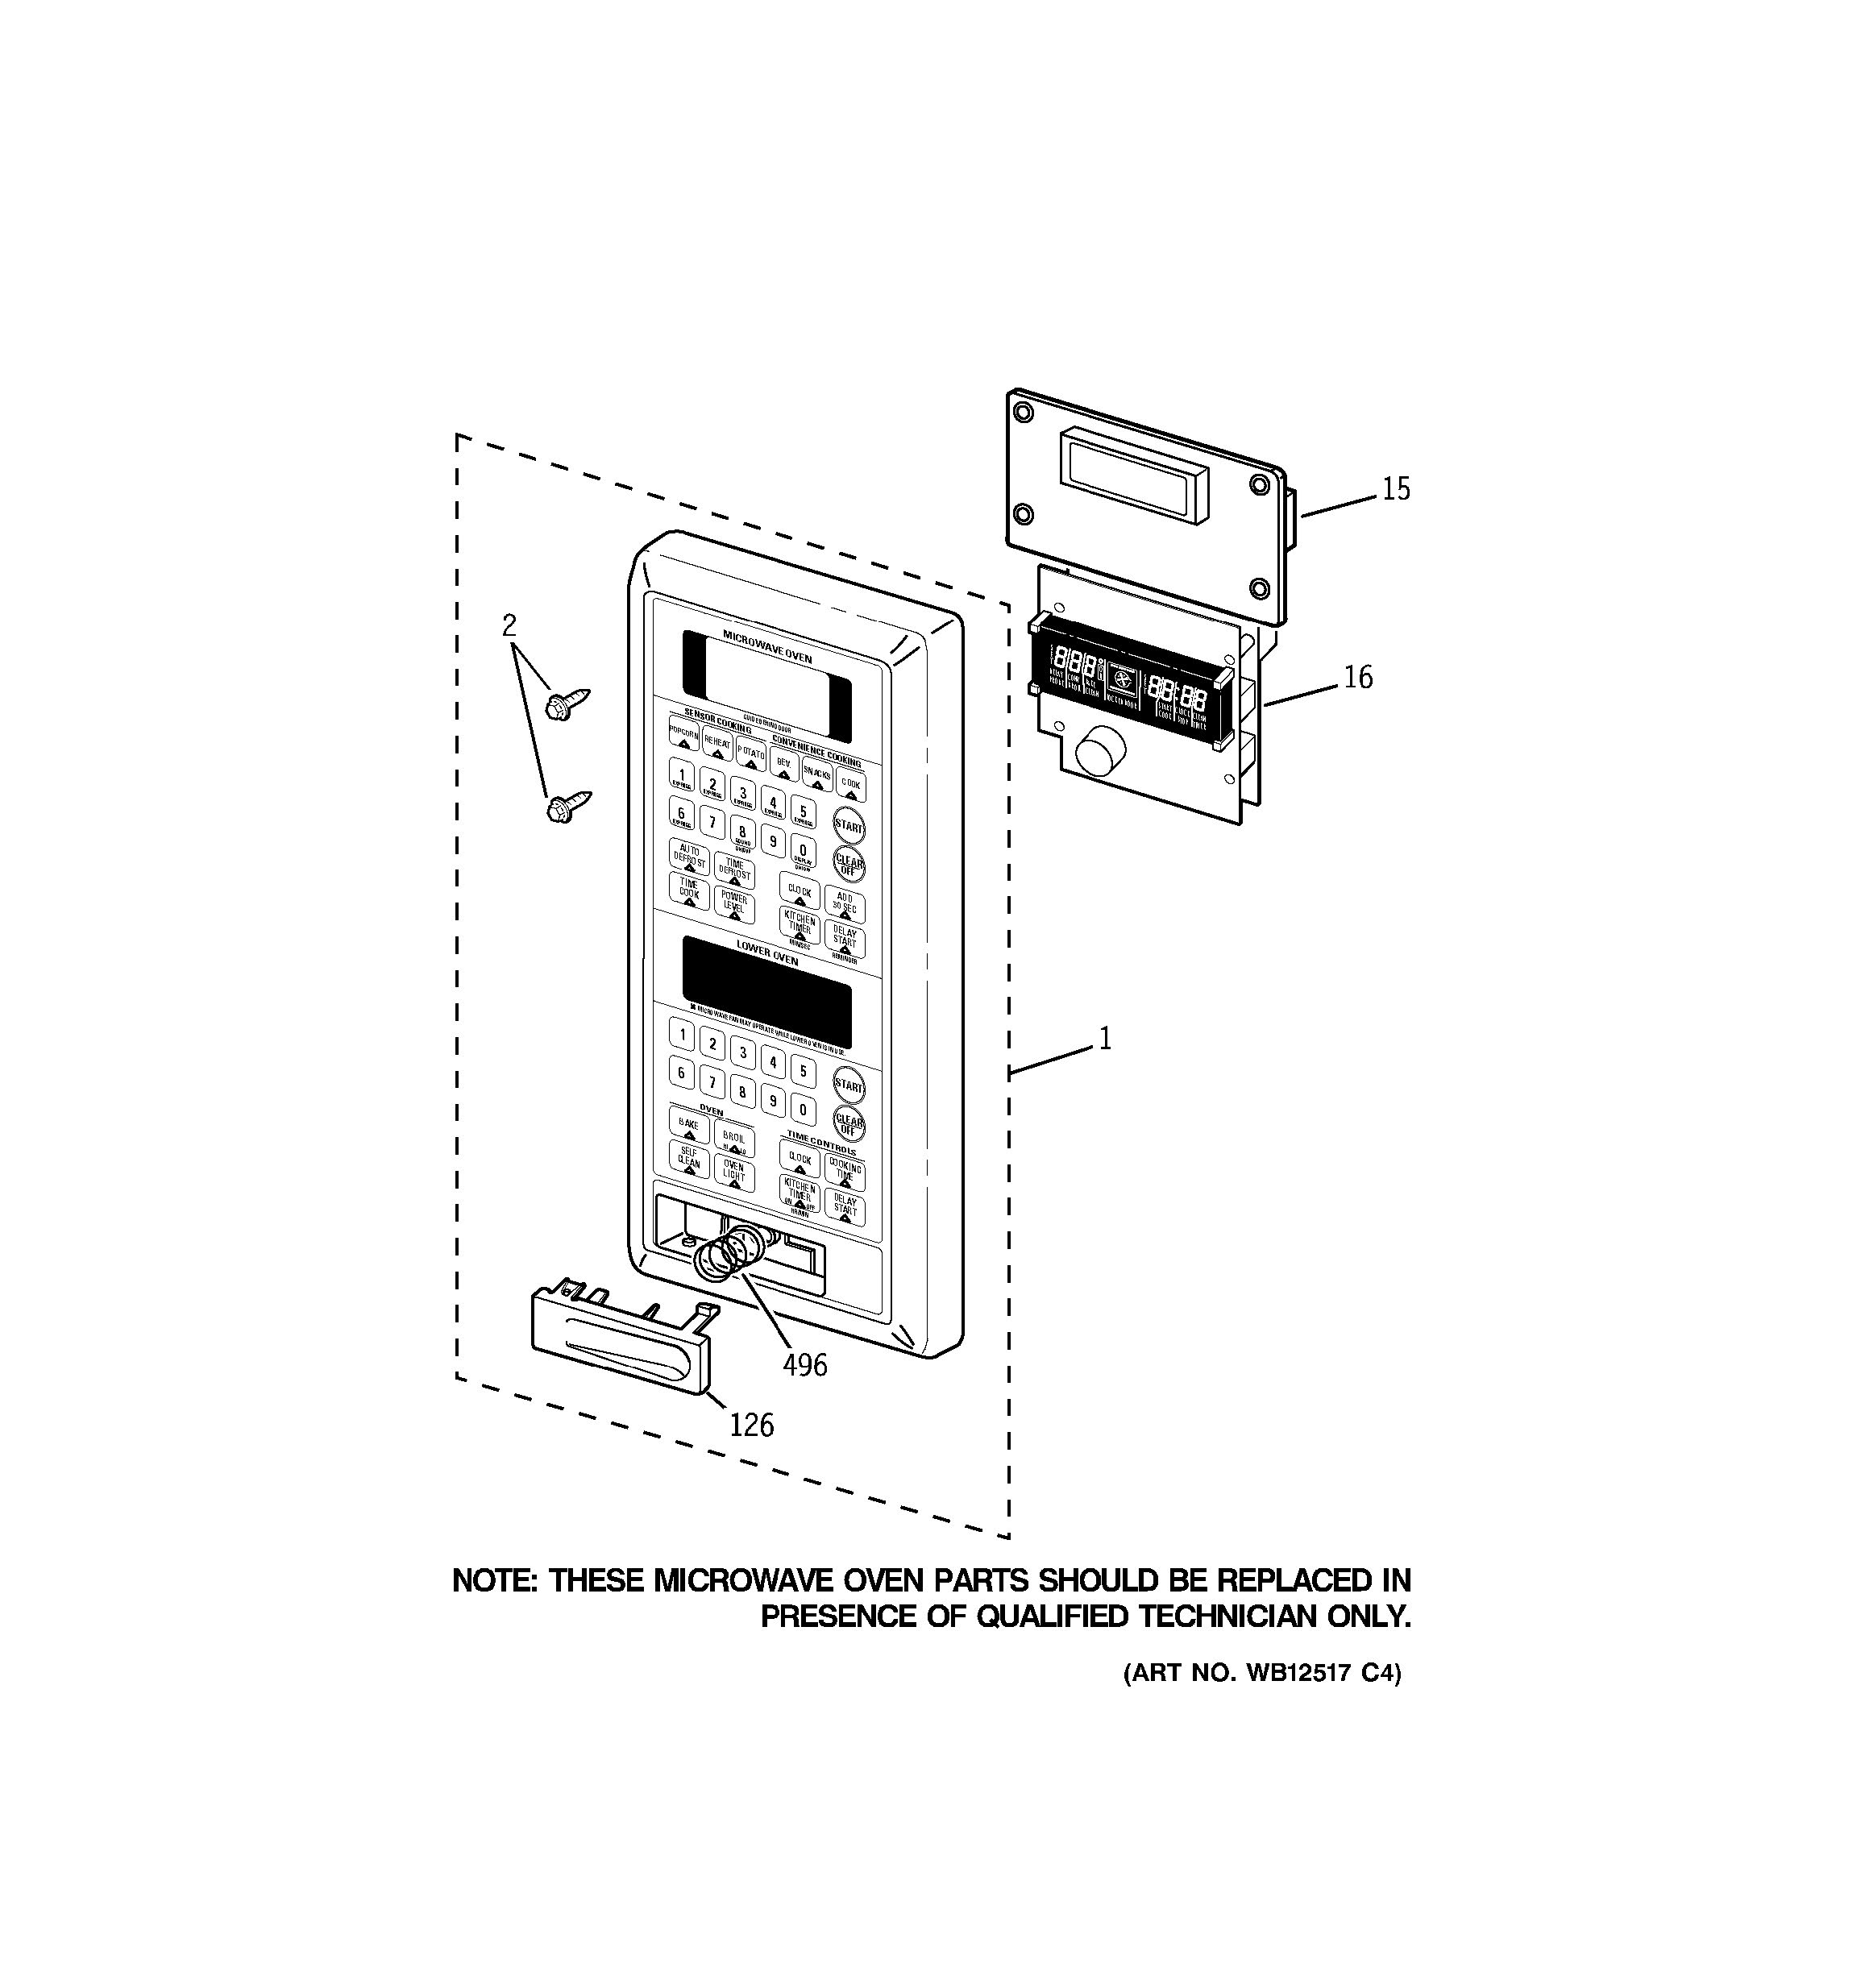 Assembly View For Microwave Control Panel